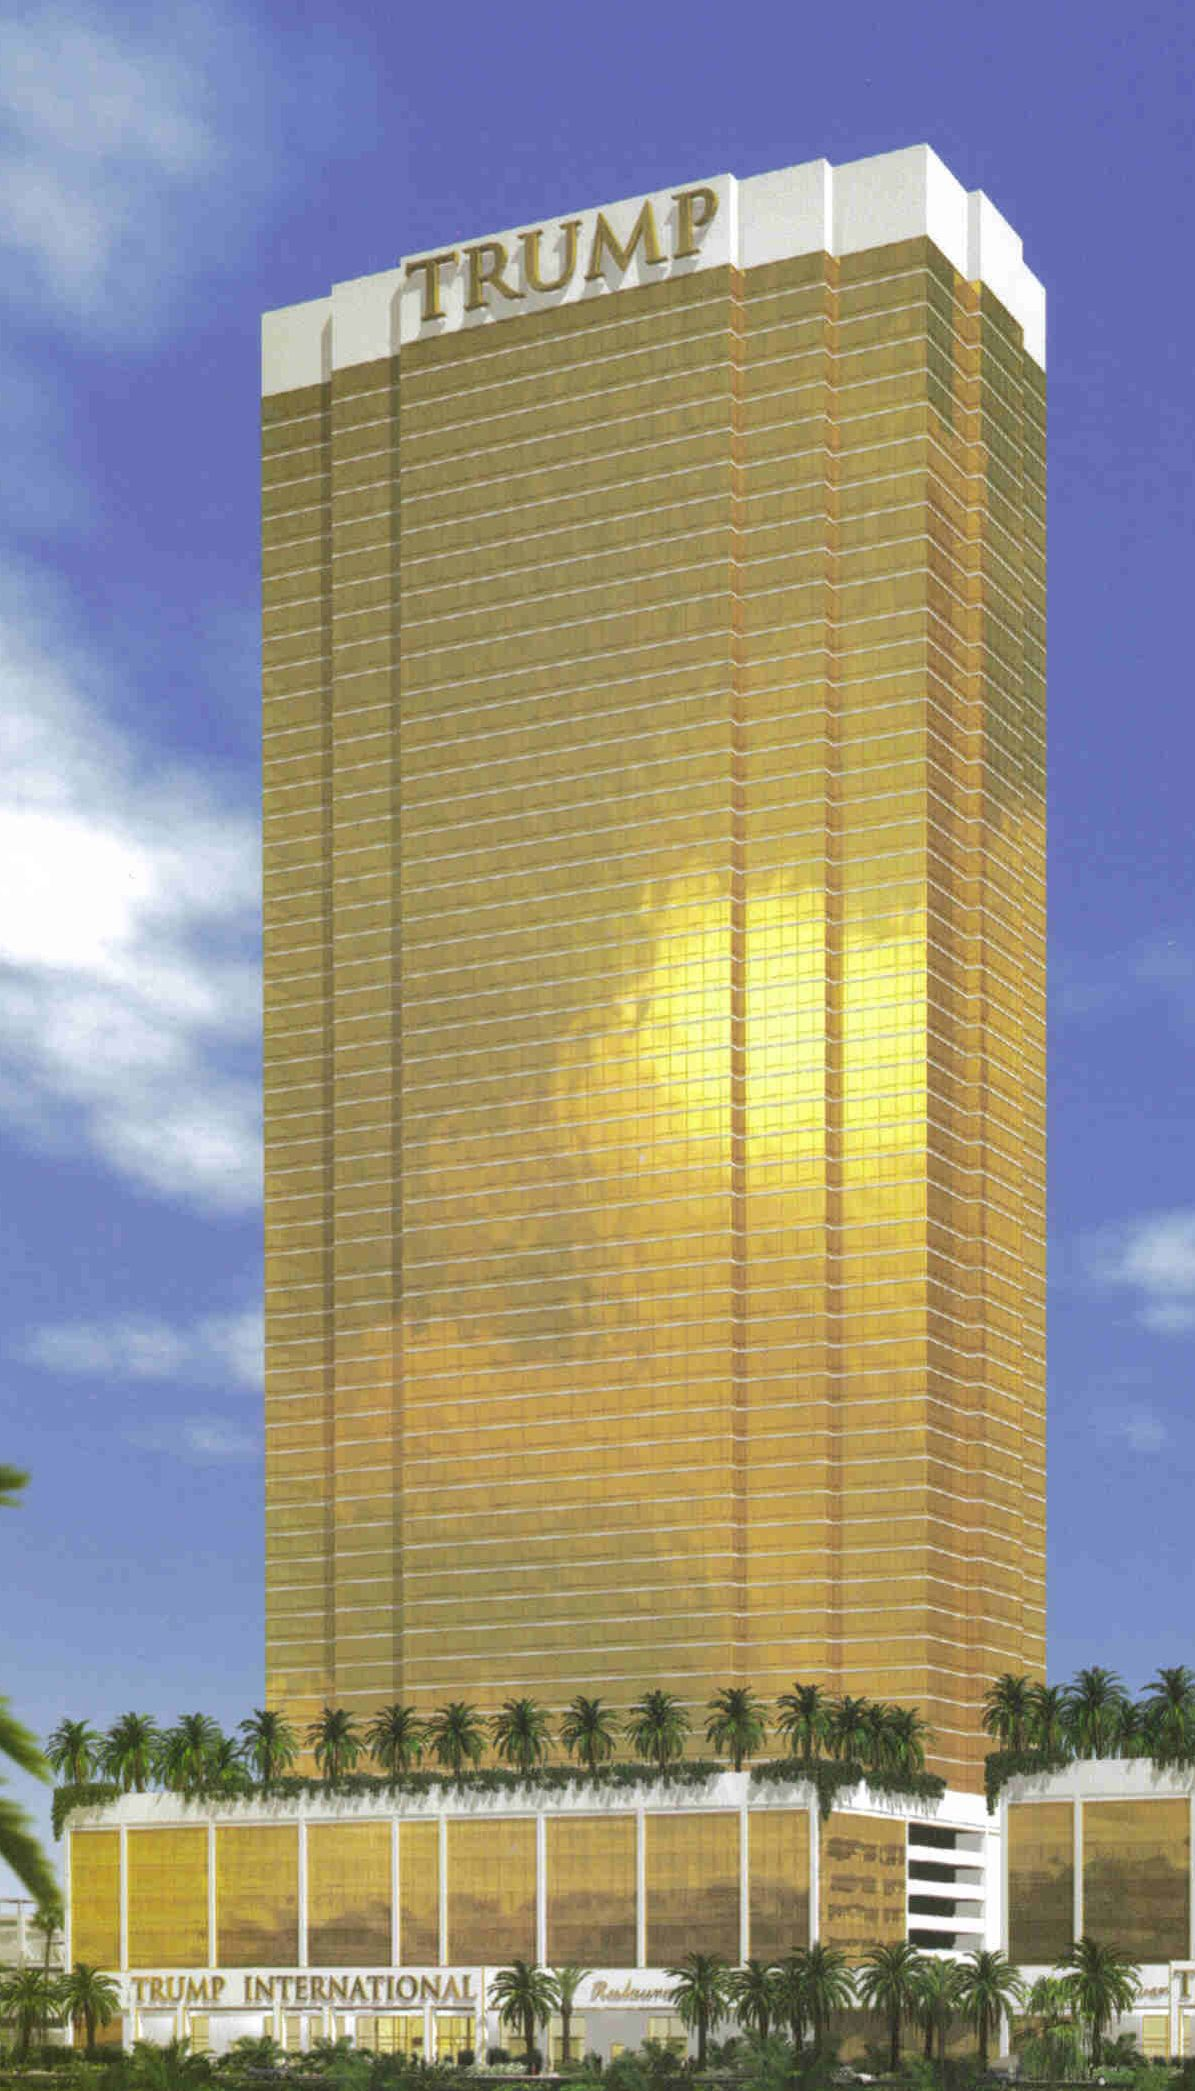 Trump Tower Condo For Sale Available For Assignment At 2005 Prices Trump Tower Las Vegas Trump International Hotel Las Vegas Las Vegas Hotels